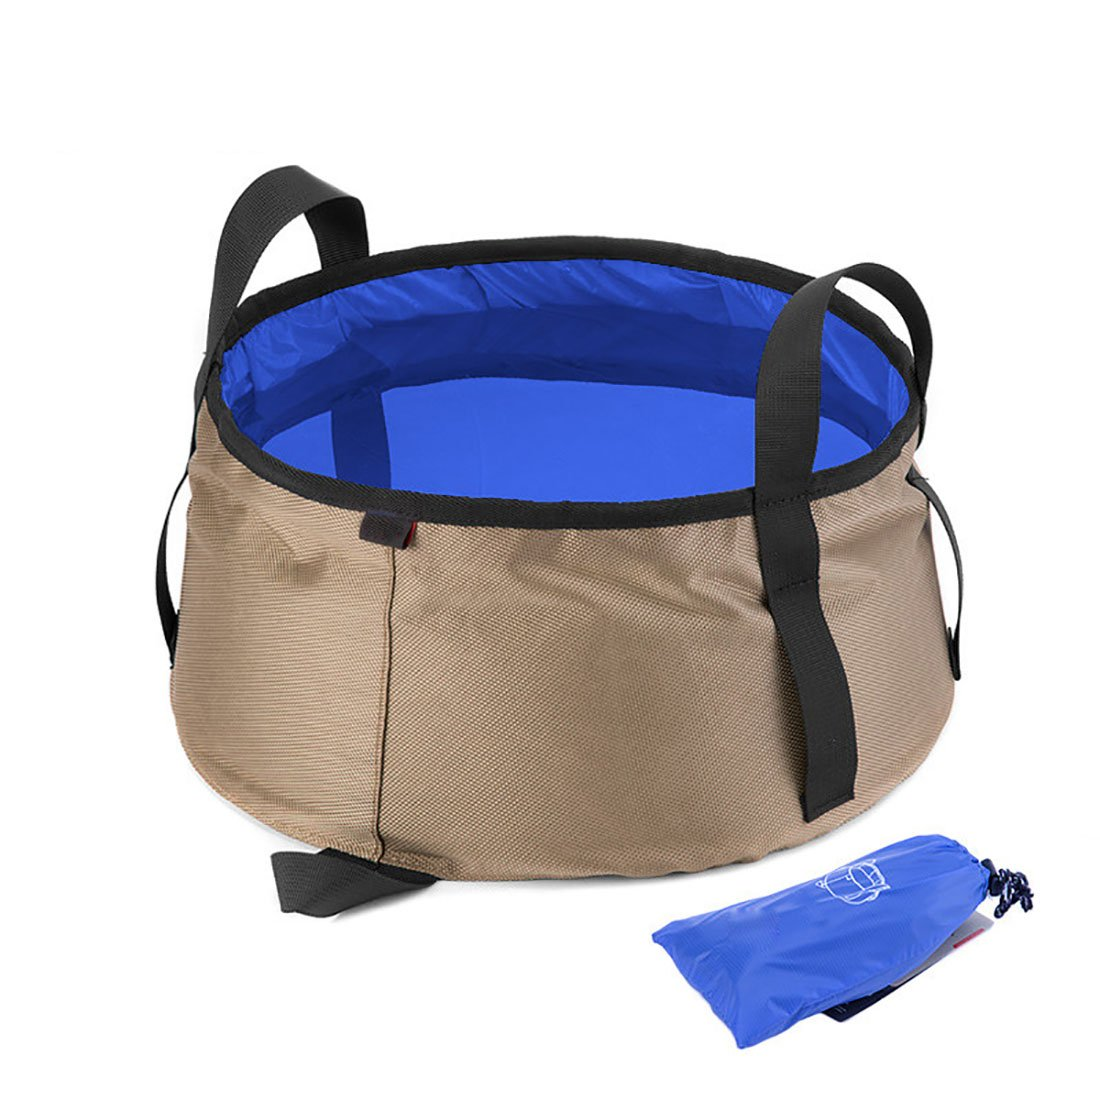 ALXDR Portable Washbasin Outdoor Water Bucket For Camping Travel Multi-Purpose Water Container Pail Silica Gel Waterproof, Large Capacity, 10L,Blue